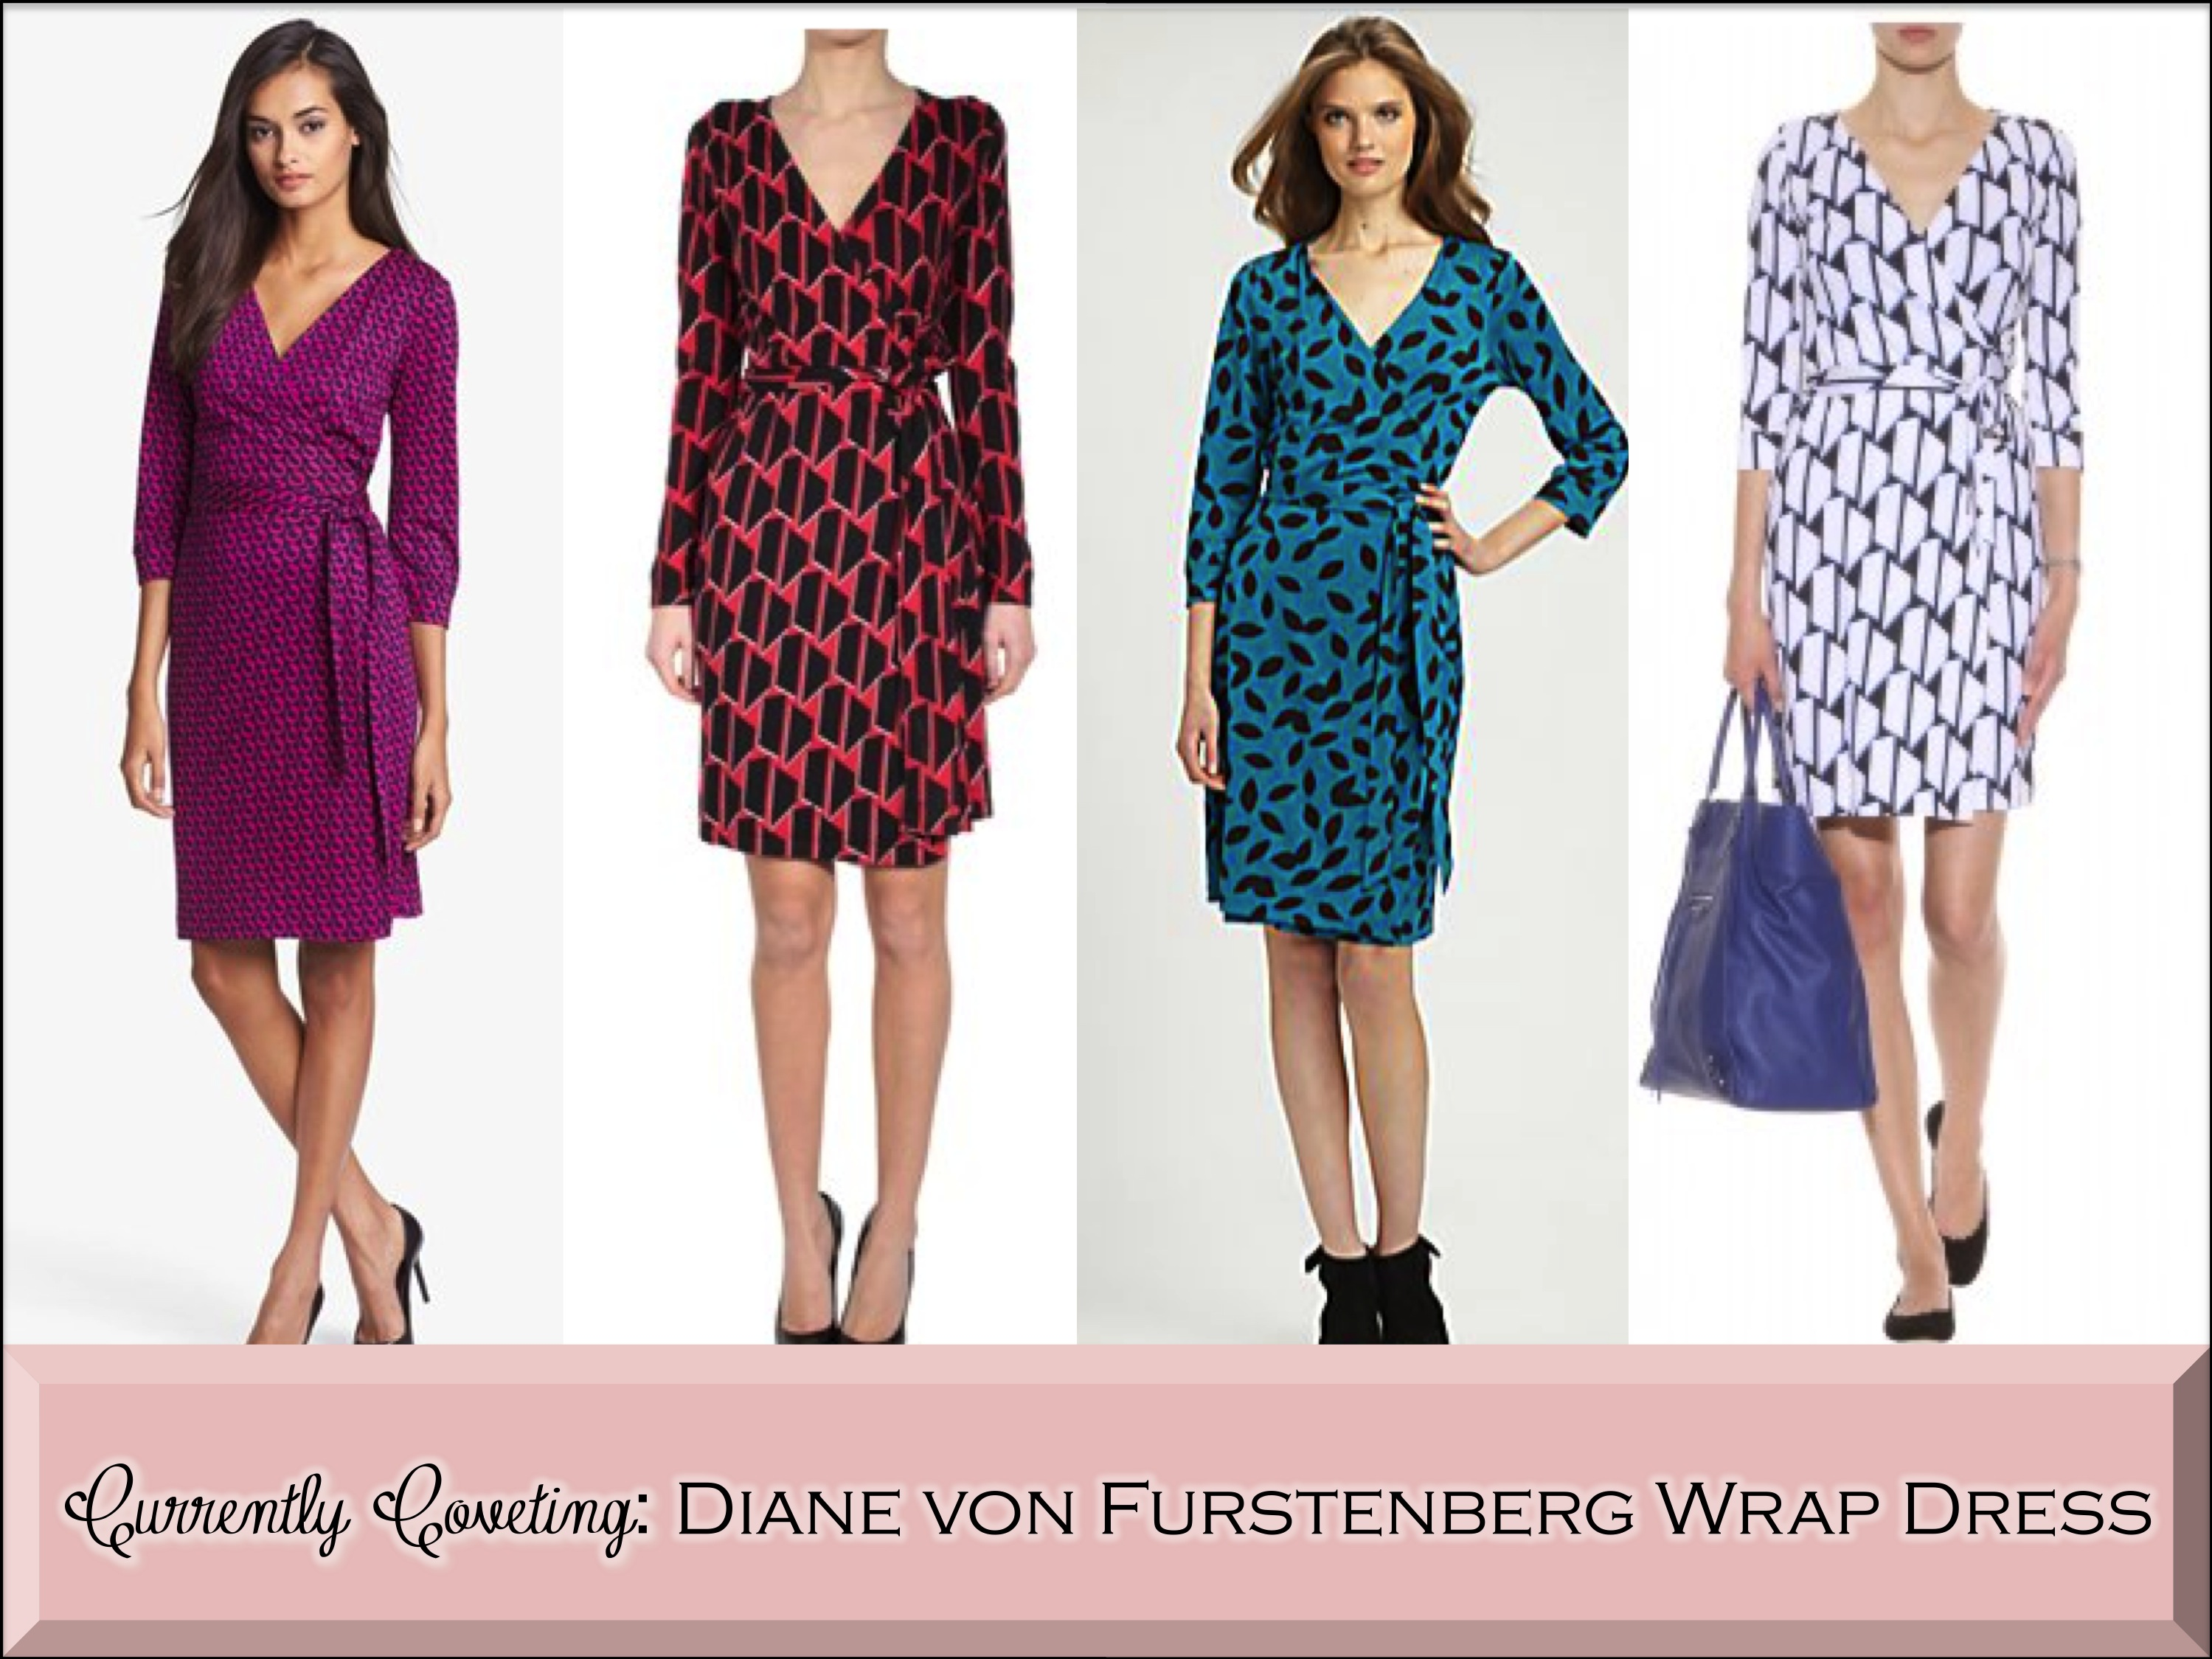 Dvf Dress Patterns Diane von Furstenberg wrap